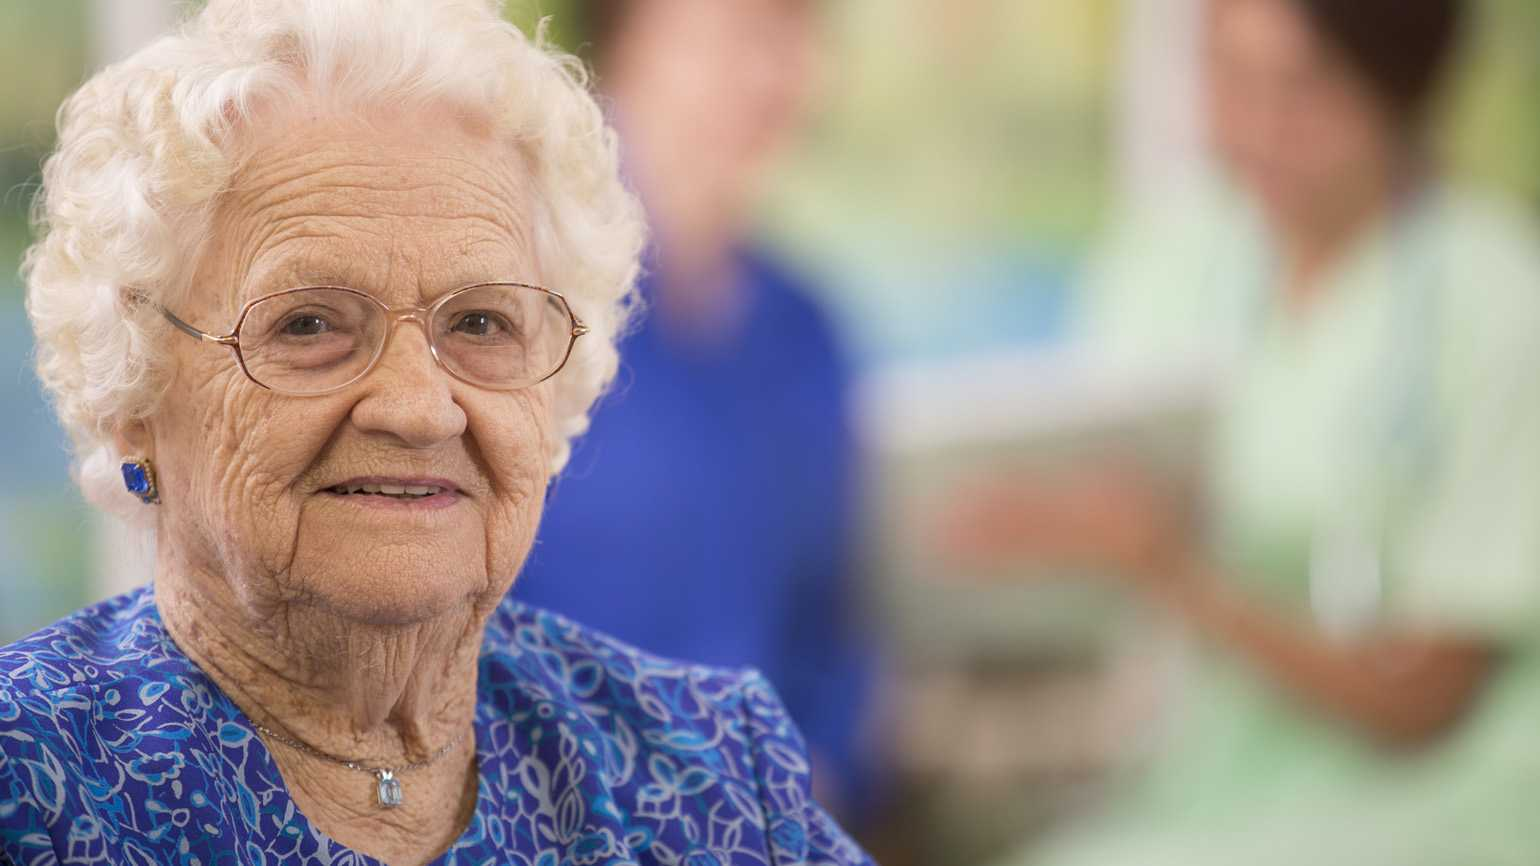 A woman in her golden years.